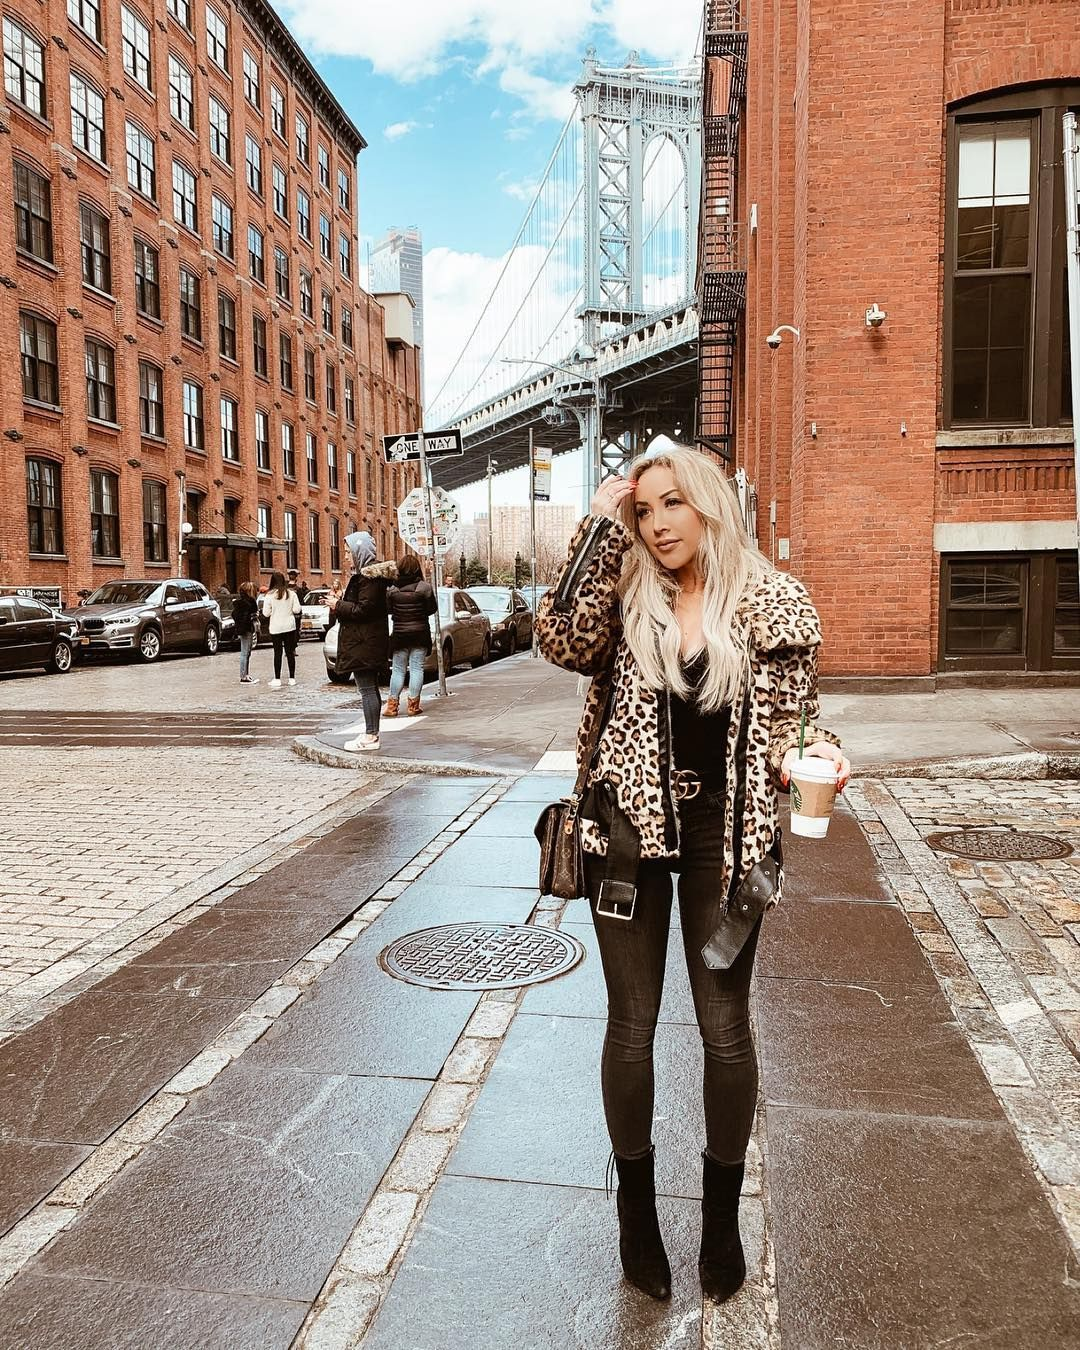 ʙʟᴏɴᴅɪᴇ ɪɴ ᴛʜᴇ ᴄɪᴛʏ Hayleylarue On Instagram Brooklyn New York City Gossip Girl Vibes Blonde Hai Fashion Nova Bodysuit New York Blog Nyc Street Style